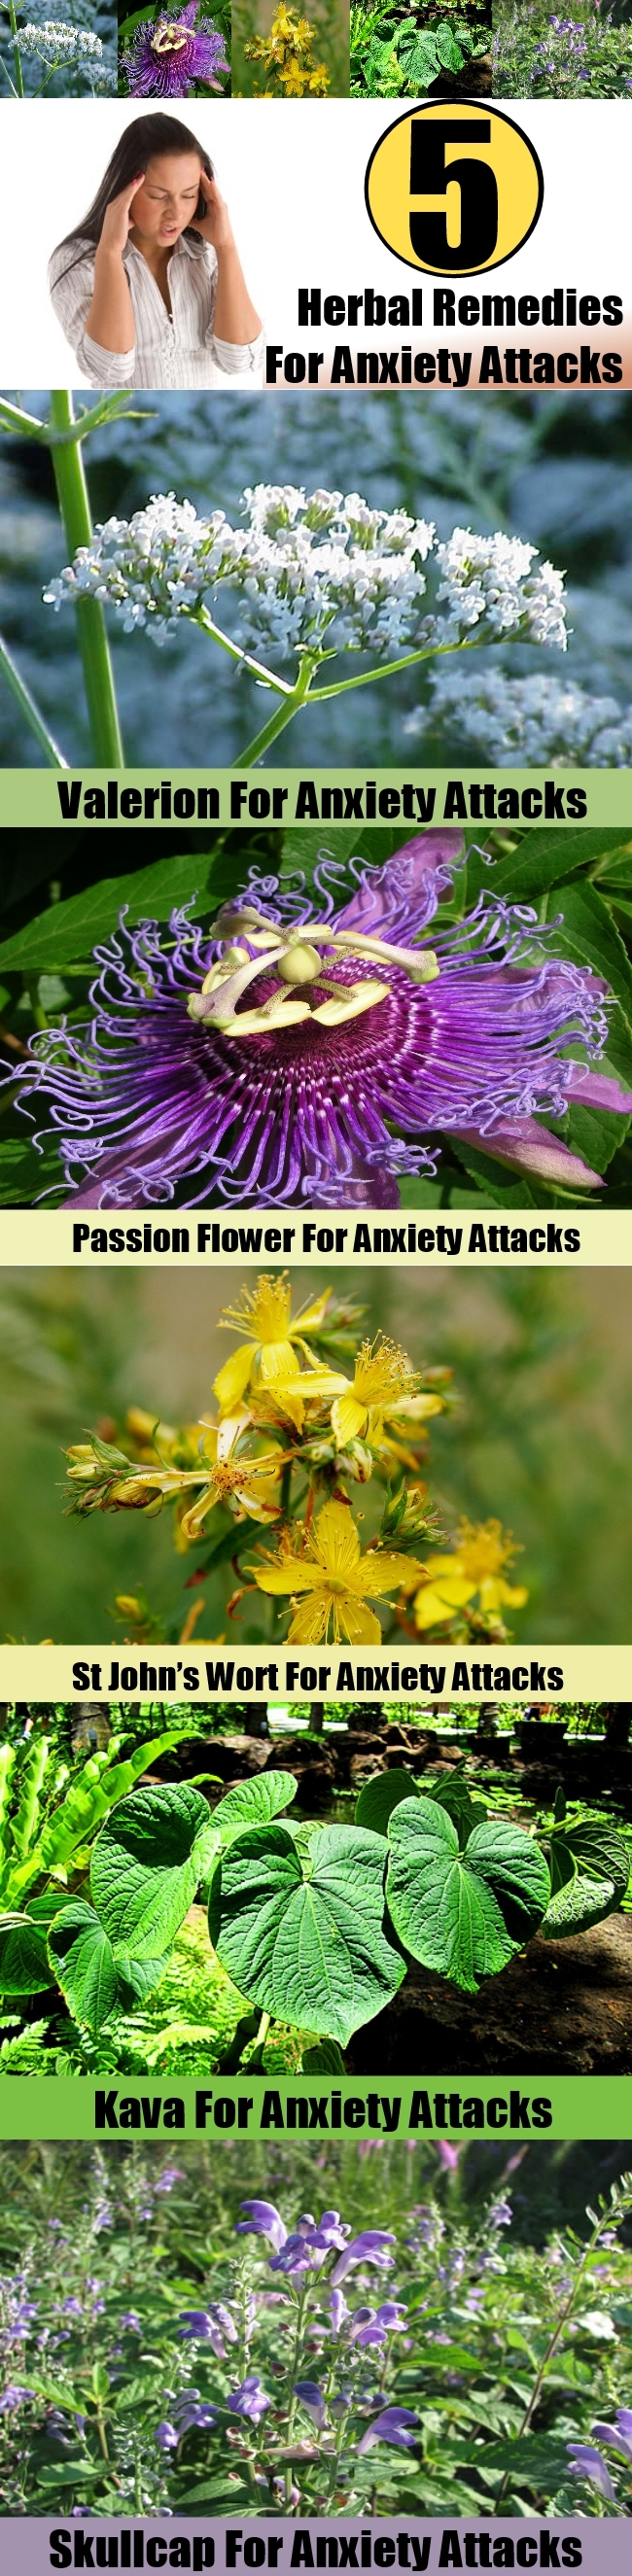 5 Powerful Herbal Remedies For Anxiety Attacks